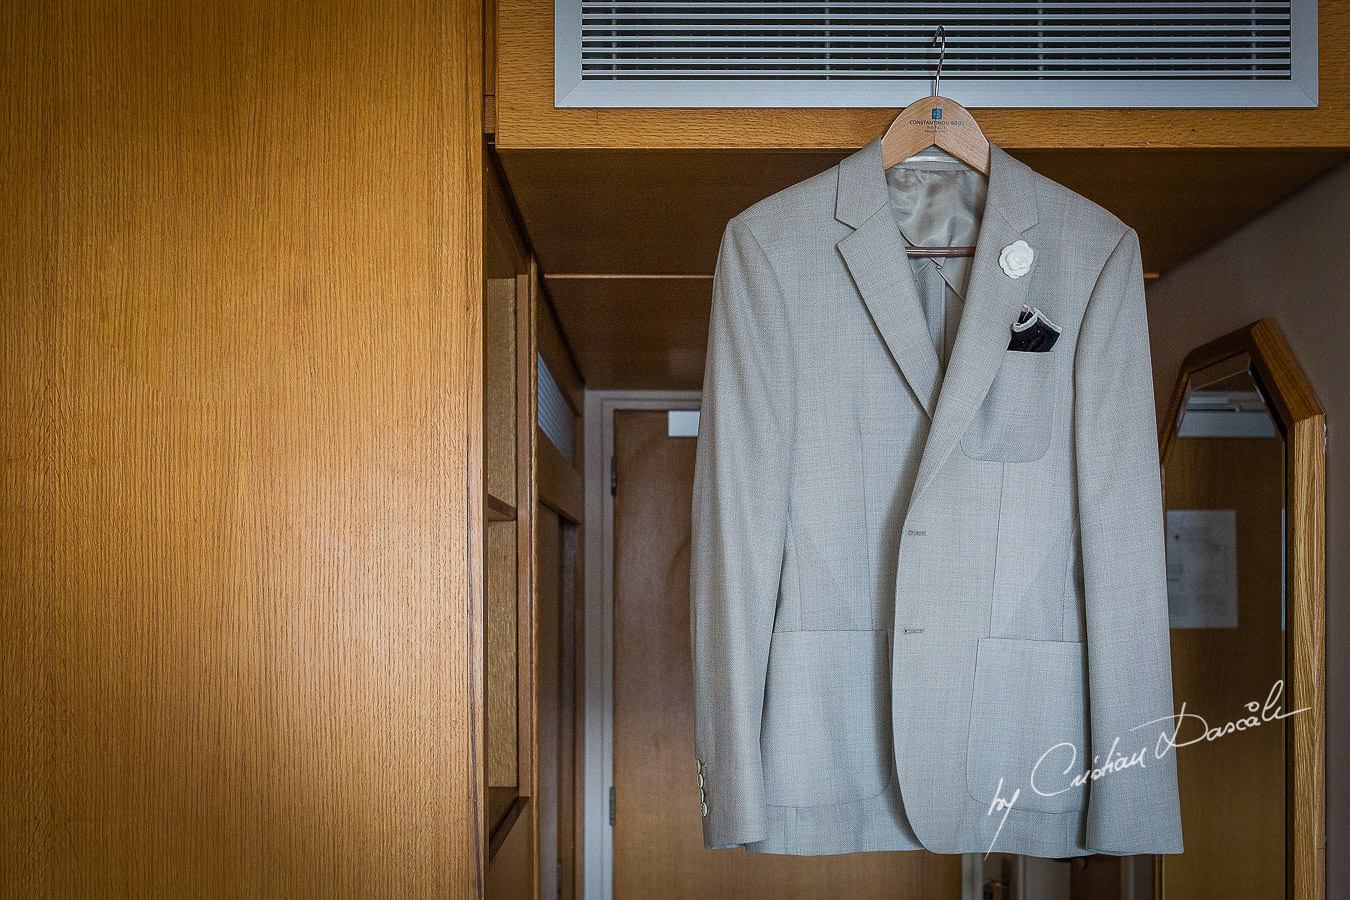 Groom's suit photographed by Cristian Dascalu at Athena Beach Hotel in Paphos, Cyprus, during a symbolic wedding.